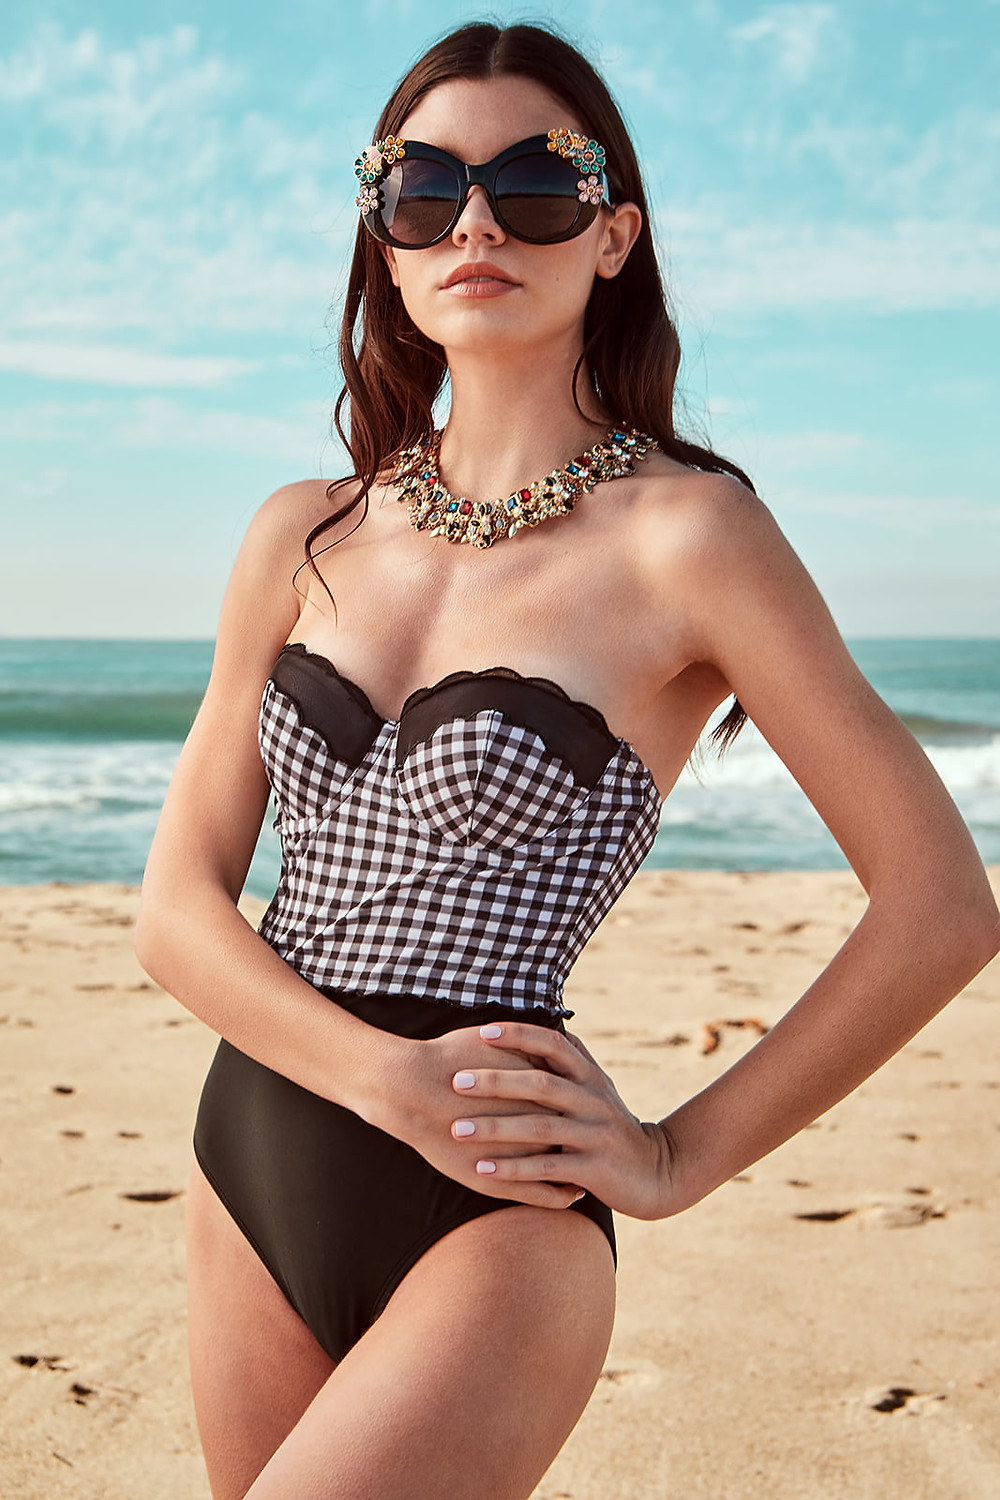 Swimwear model Gracie Phillips models a black and white gingham one piece swimsui by Betsy Johnson